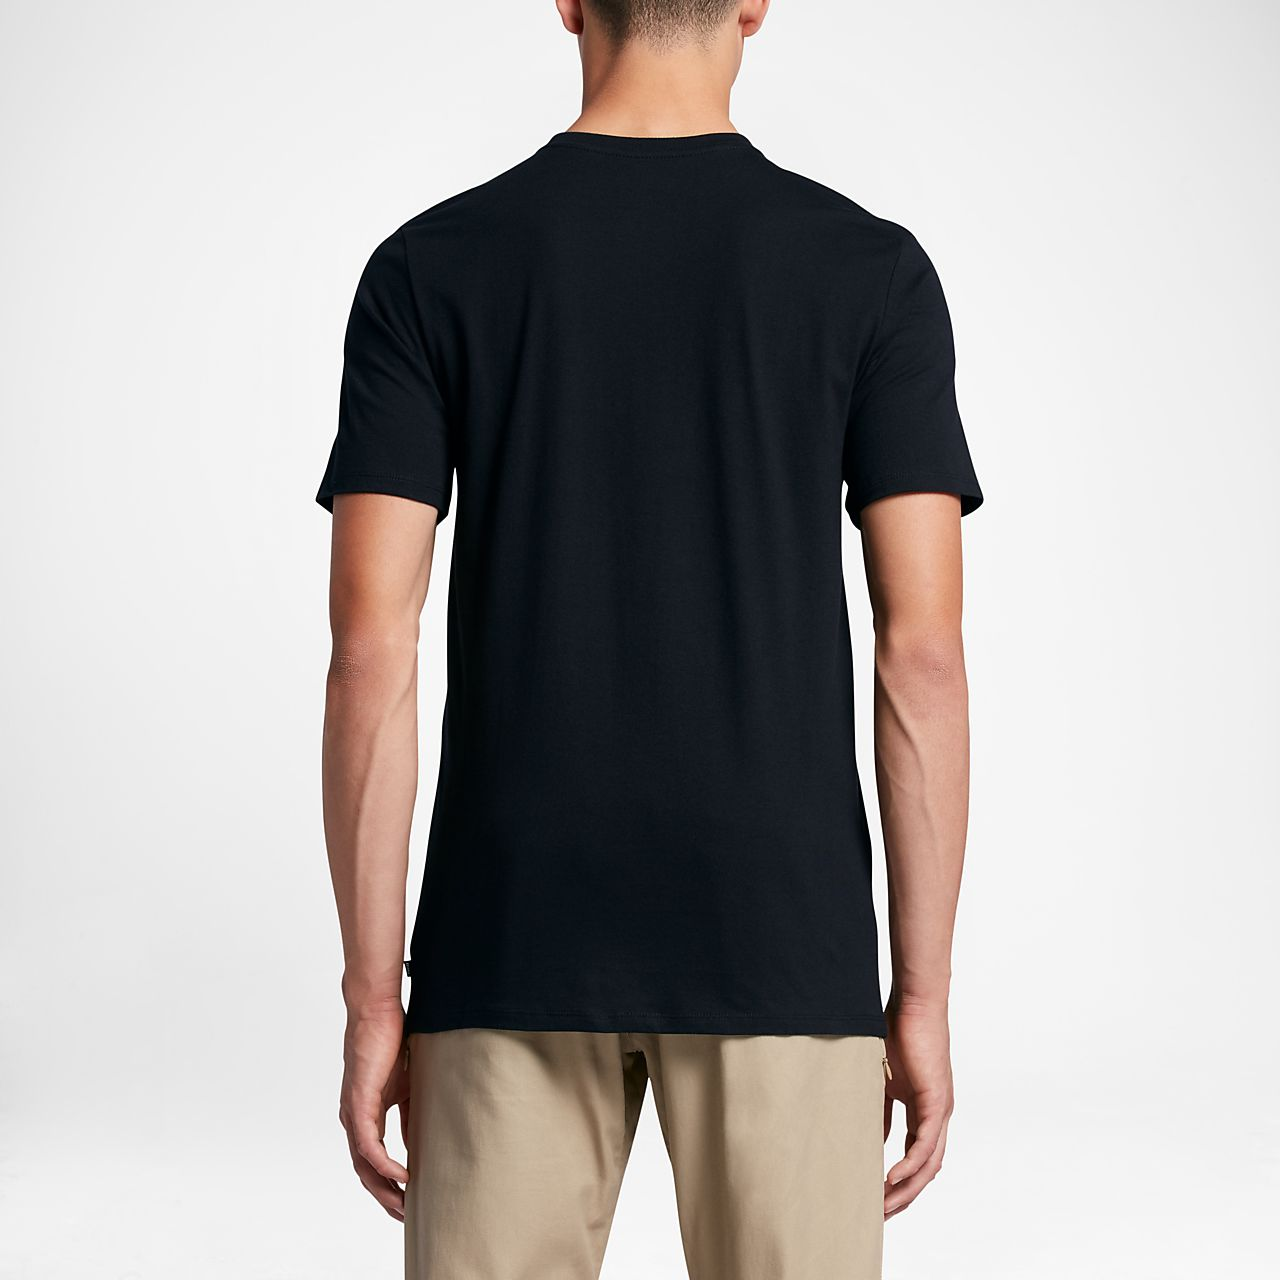 Nike sb essential herren t shirt de for Nike flyknit t shirt